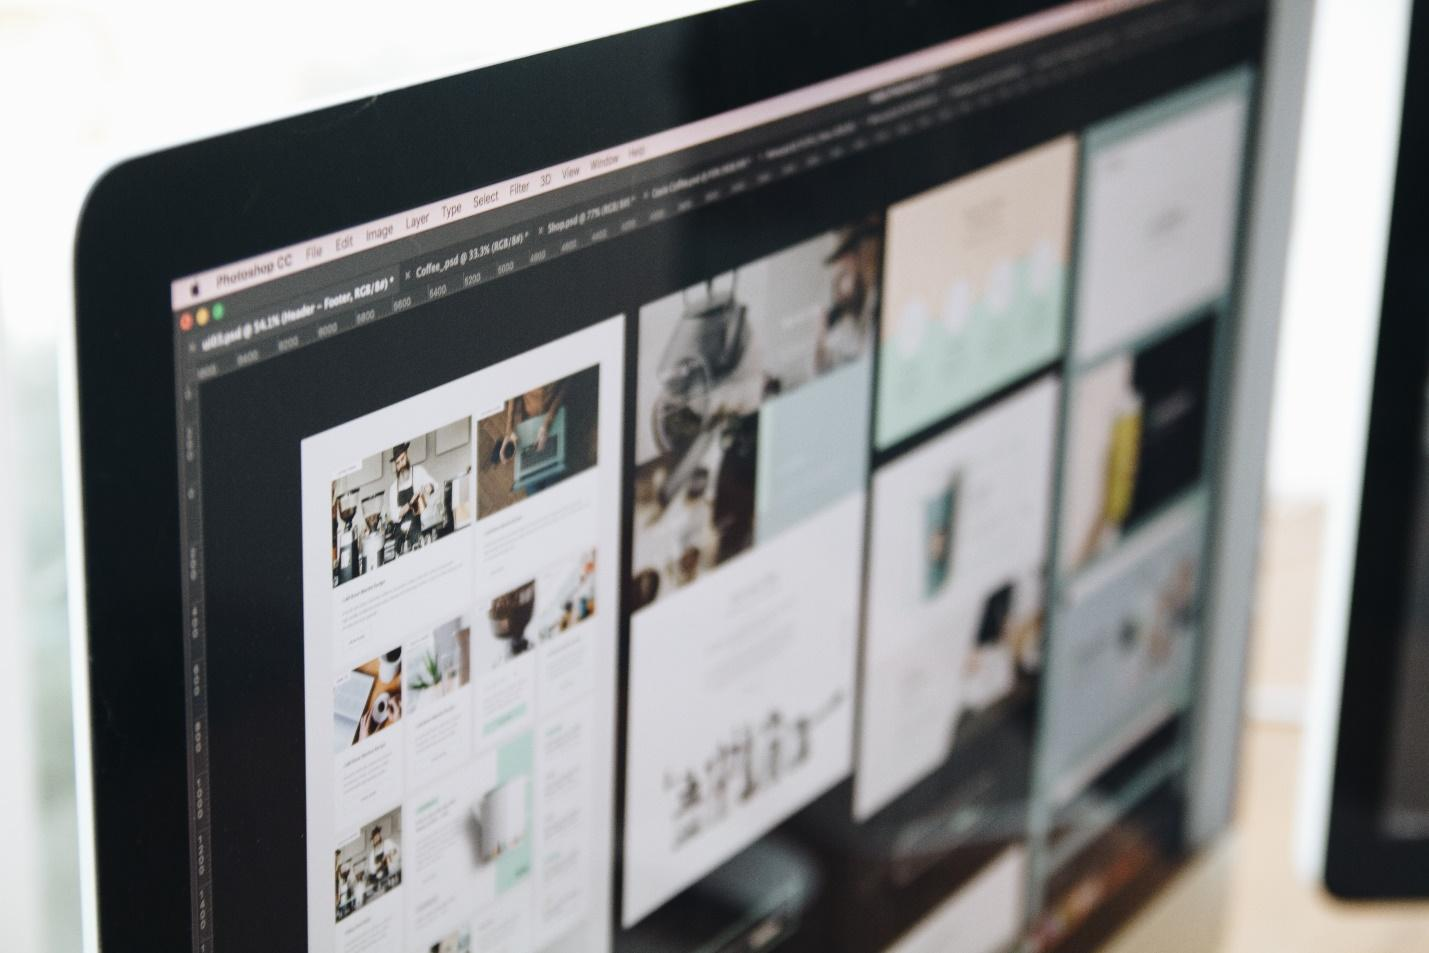 The Best Website Layouts for User Experience and Conversions